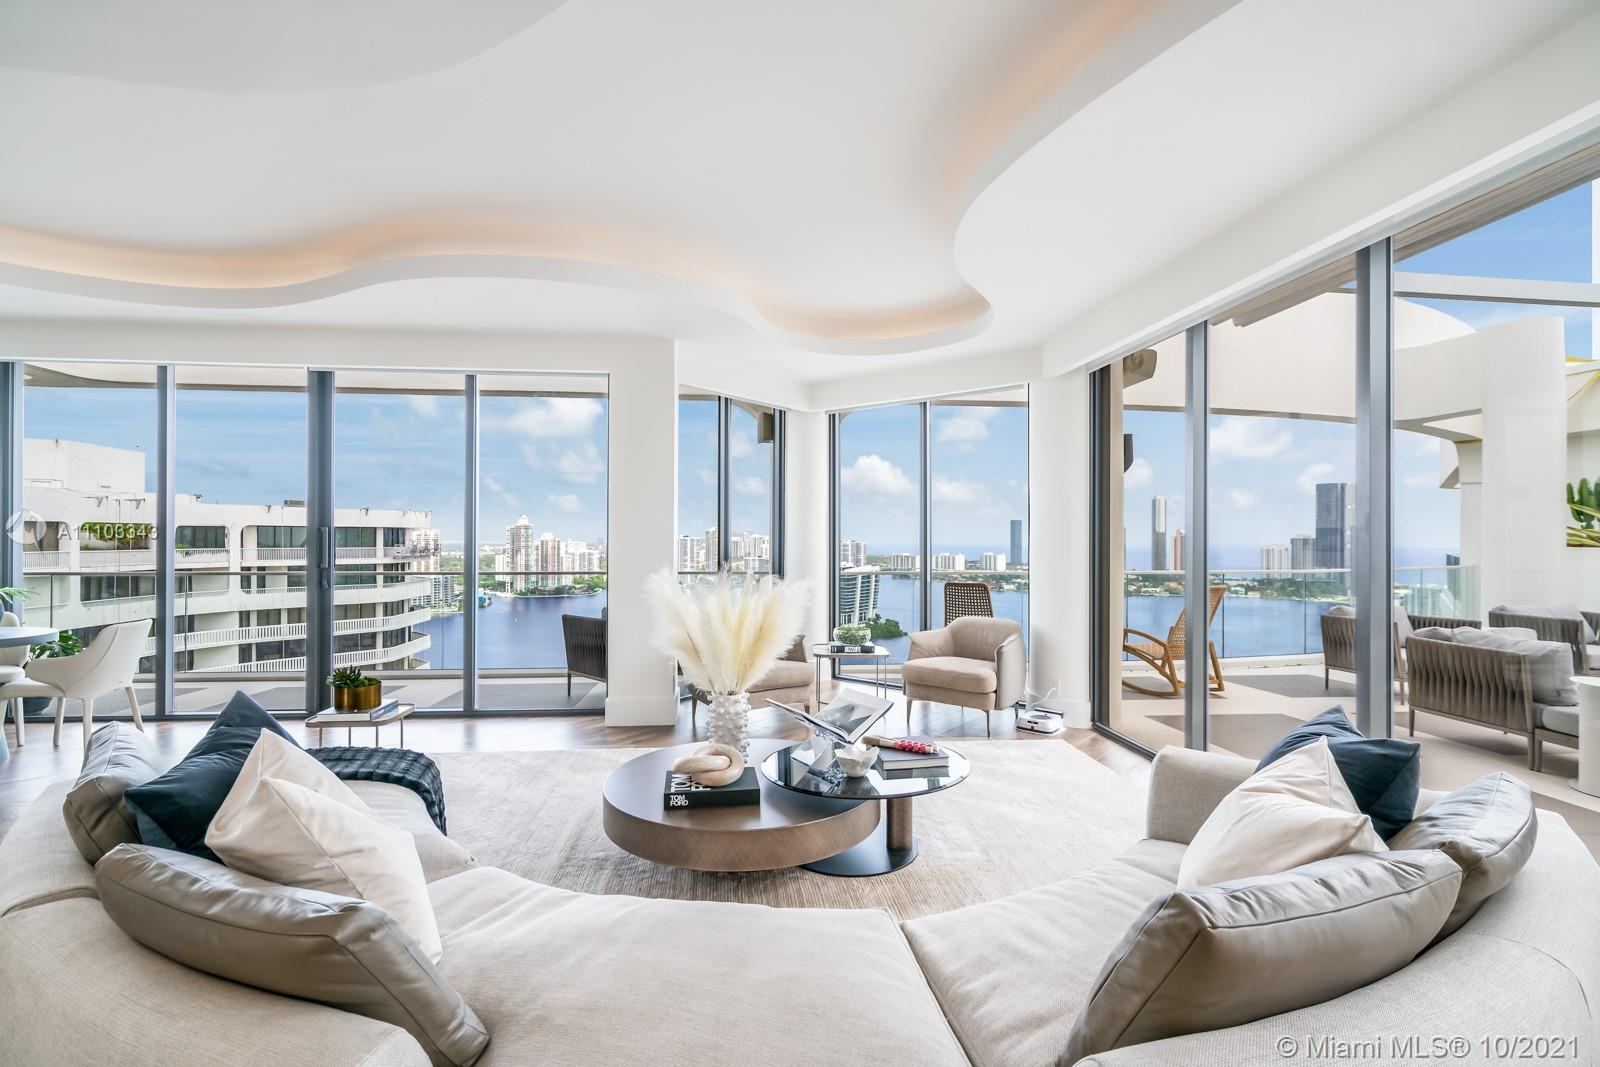 Escape the dine of the city in this luxury corner penthouse on William Island. Enjoy the stunning ci